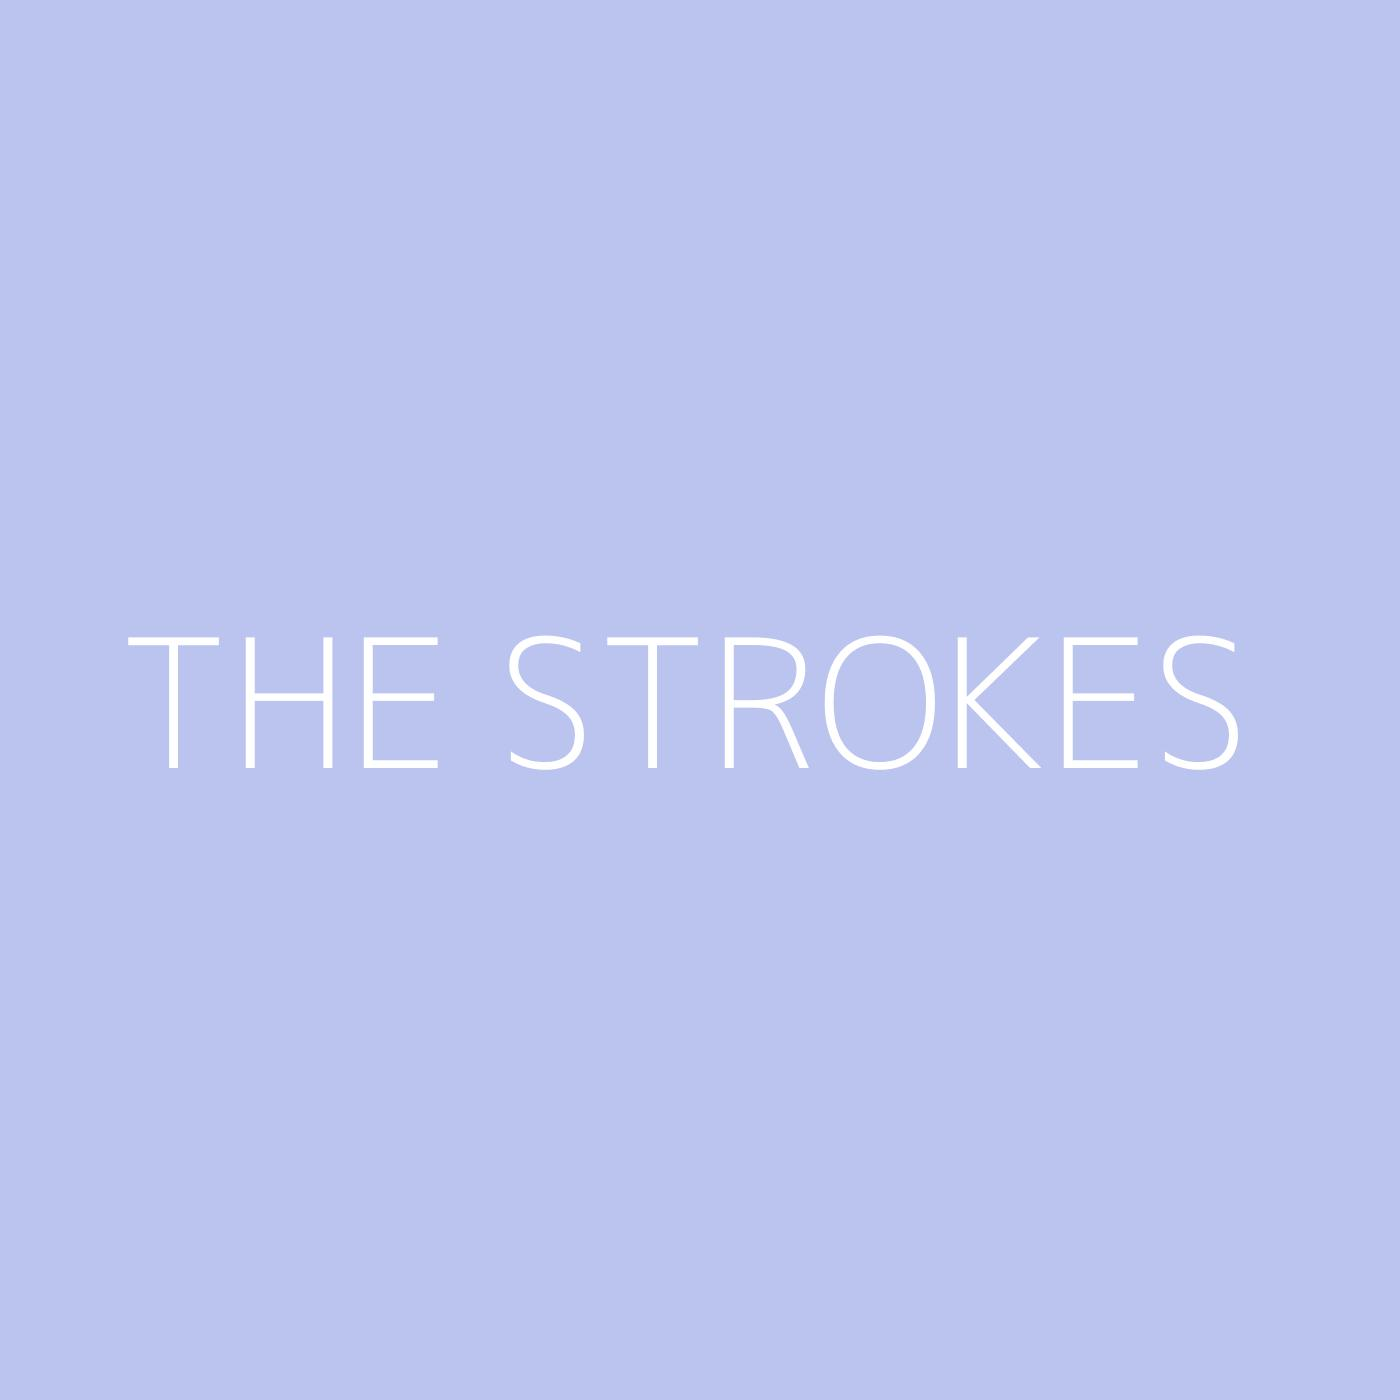 The Strokes Playlist Artwork